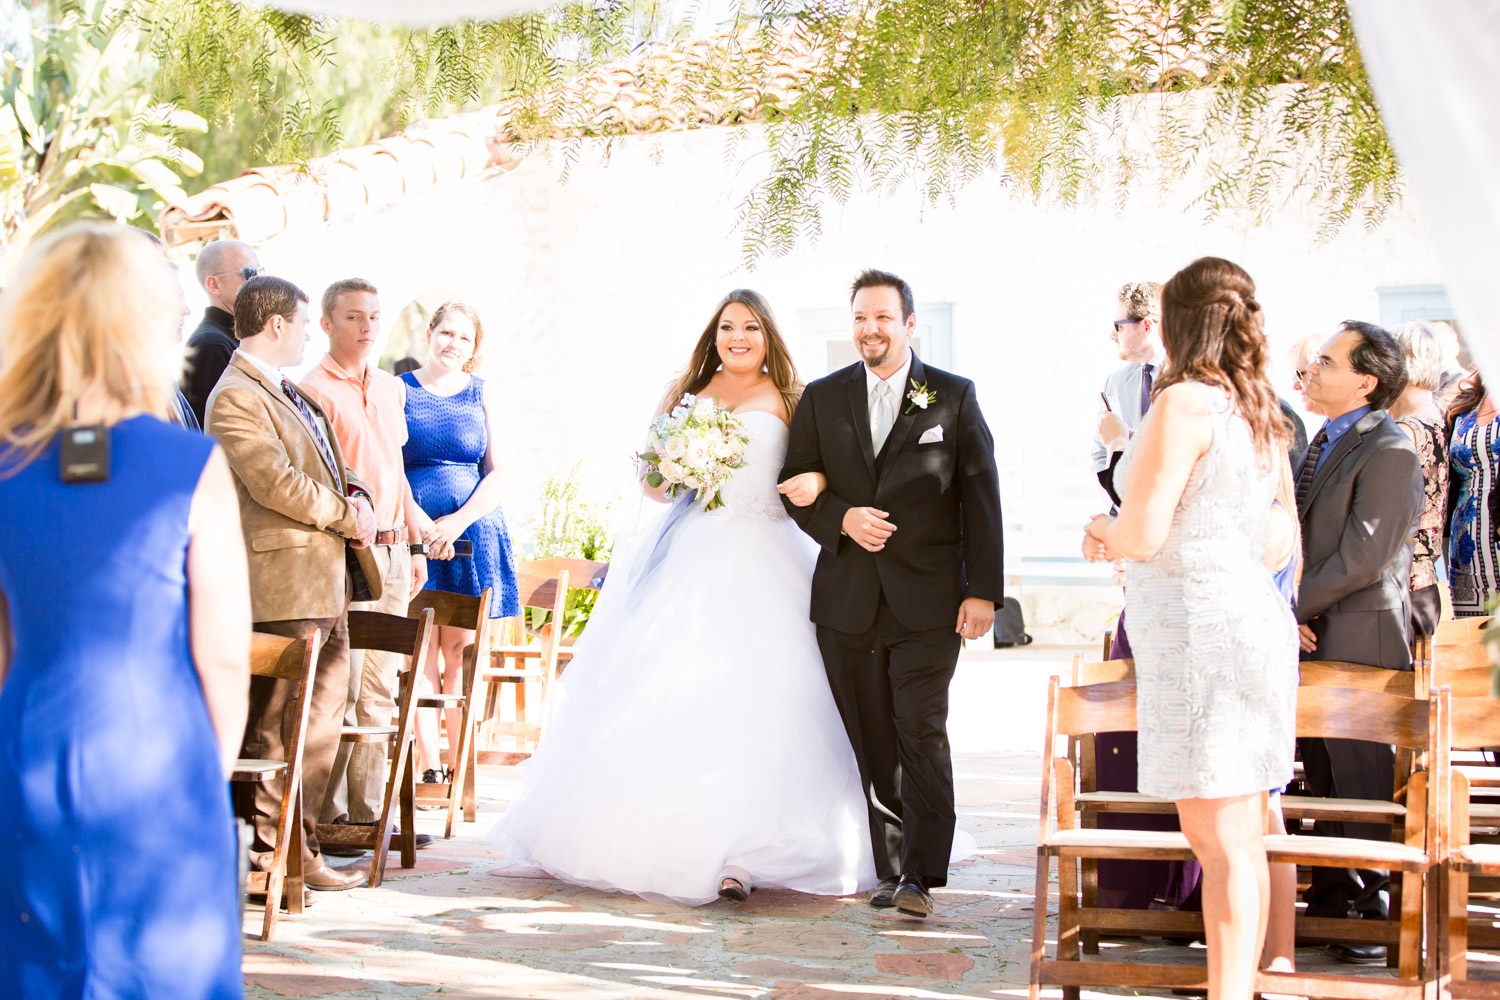 Leo Carrillo ceremony photo of father walikng daughter down the aisle